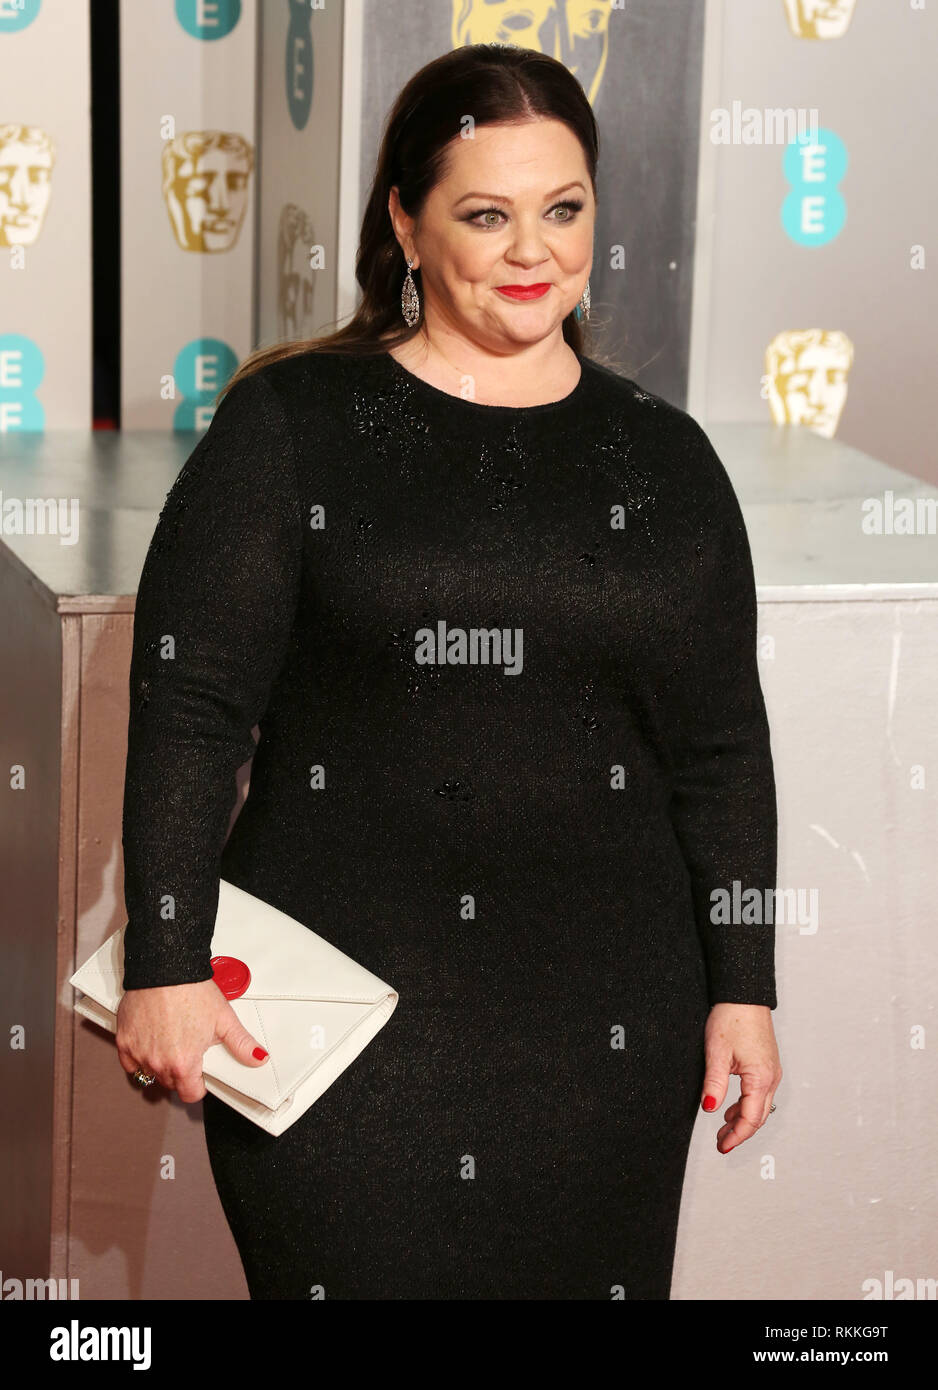 Melissa Mccarthy Seen On The Red Carpet During The British Academy Film Awards 2019 At The Royal Albert Hall In London Stock Photo Alamy